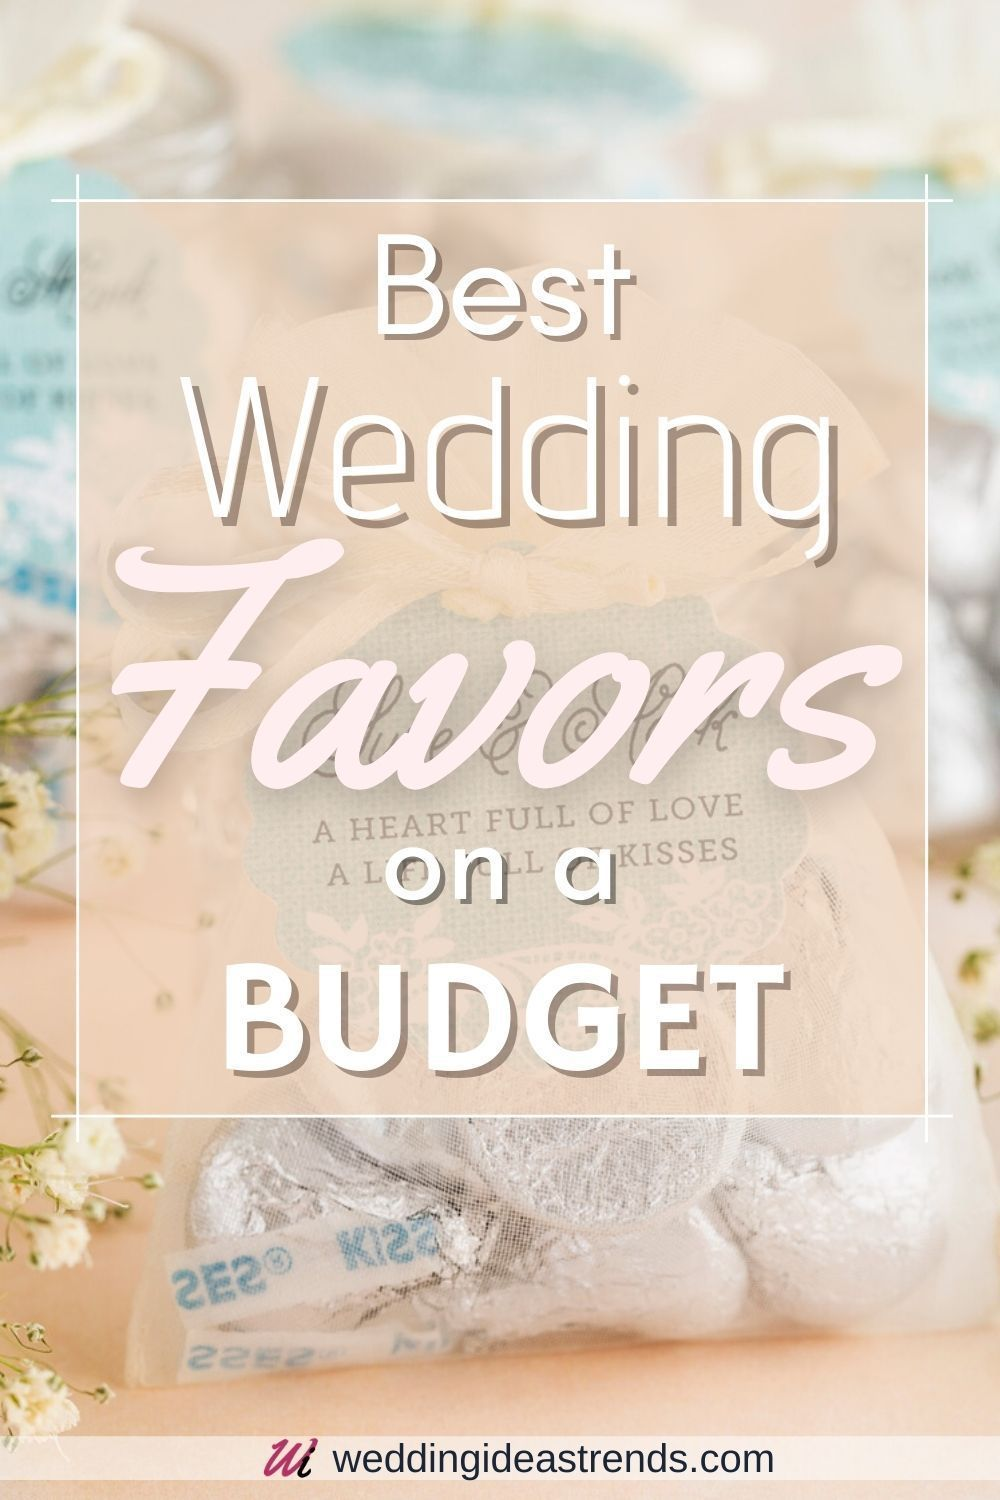 Best Wedding Favors On A Budget Wedding Gifts For Guests Under 1 In 2020 Best Wedding Favors Wedding Gift Favors Affordable Wedding Gift